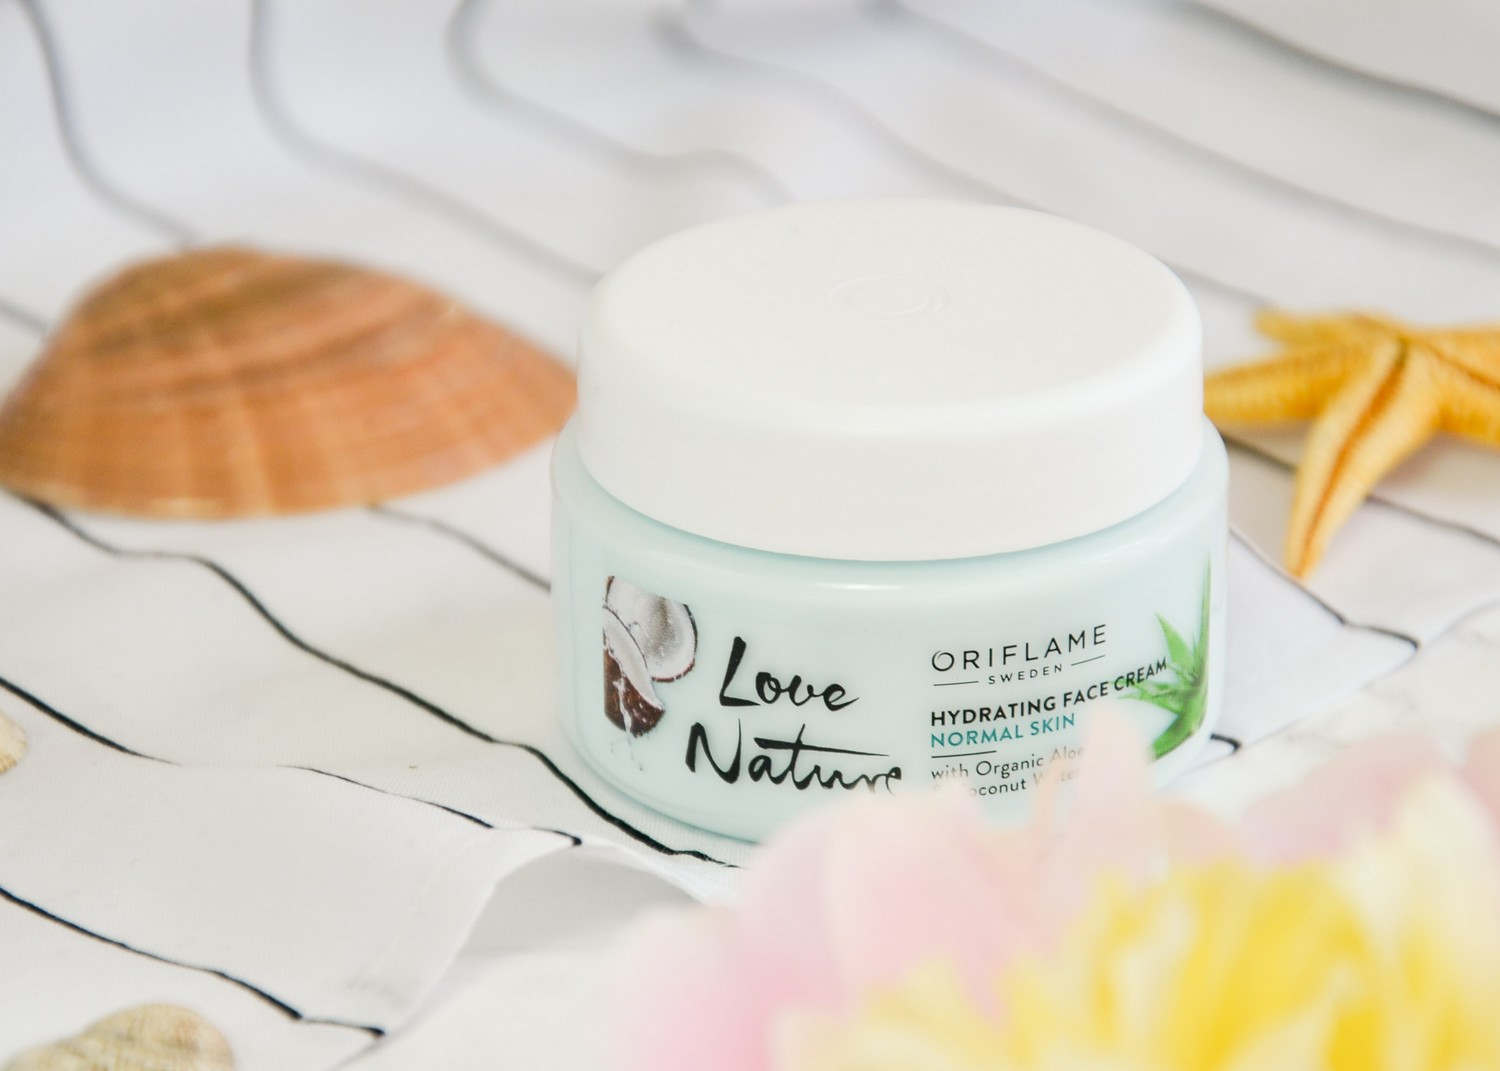 Oriflame Love Nature Skincare (Hydrating Face Cream, Refreshing Eye Gel, Purifying Face Oil and Refreshing Toner)